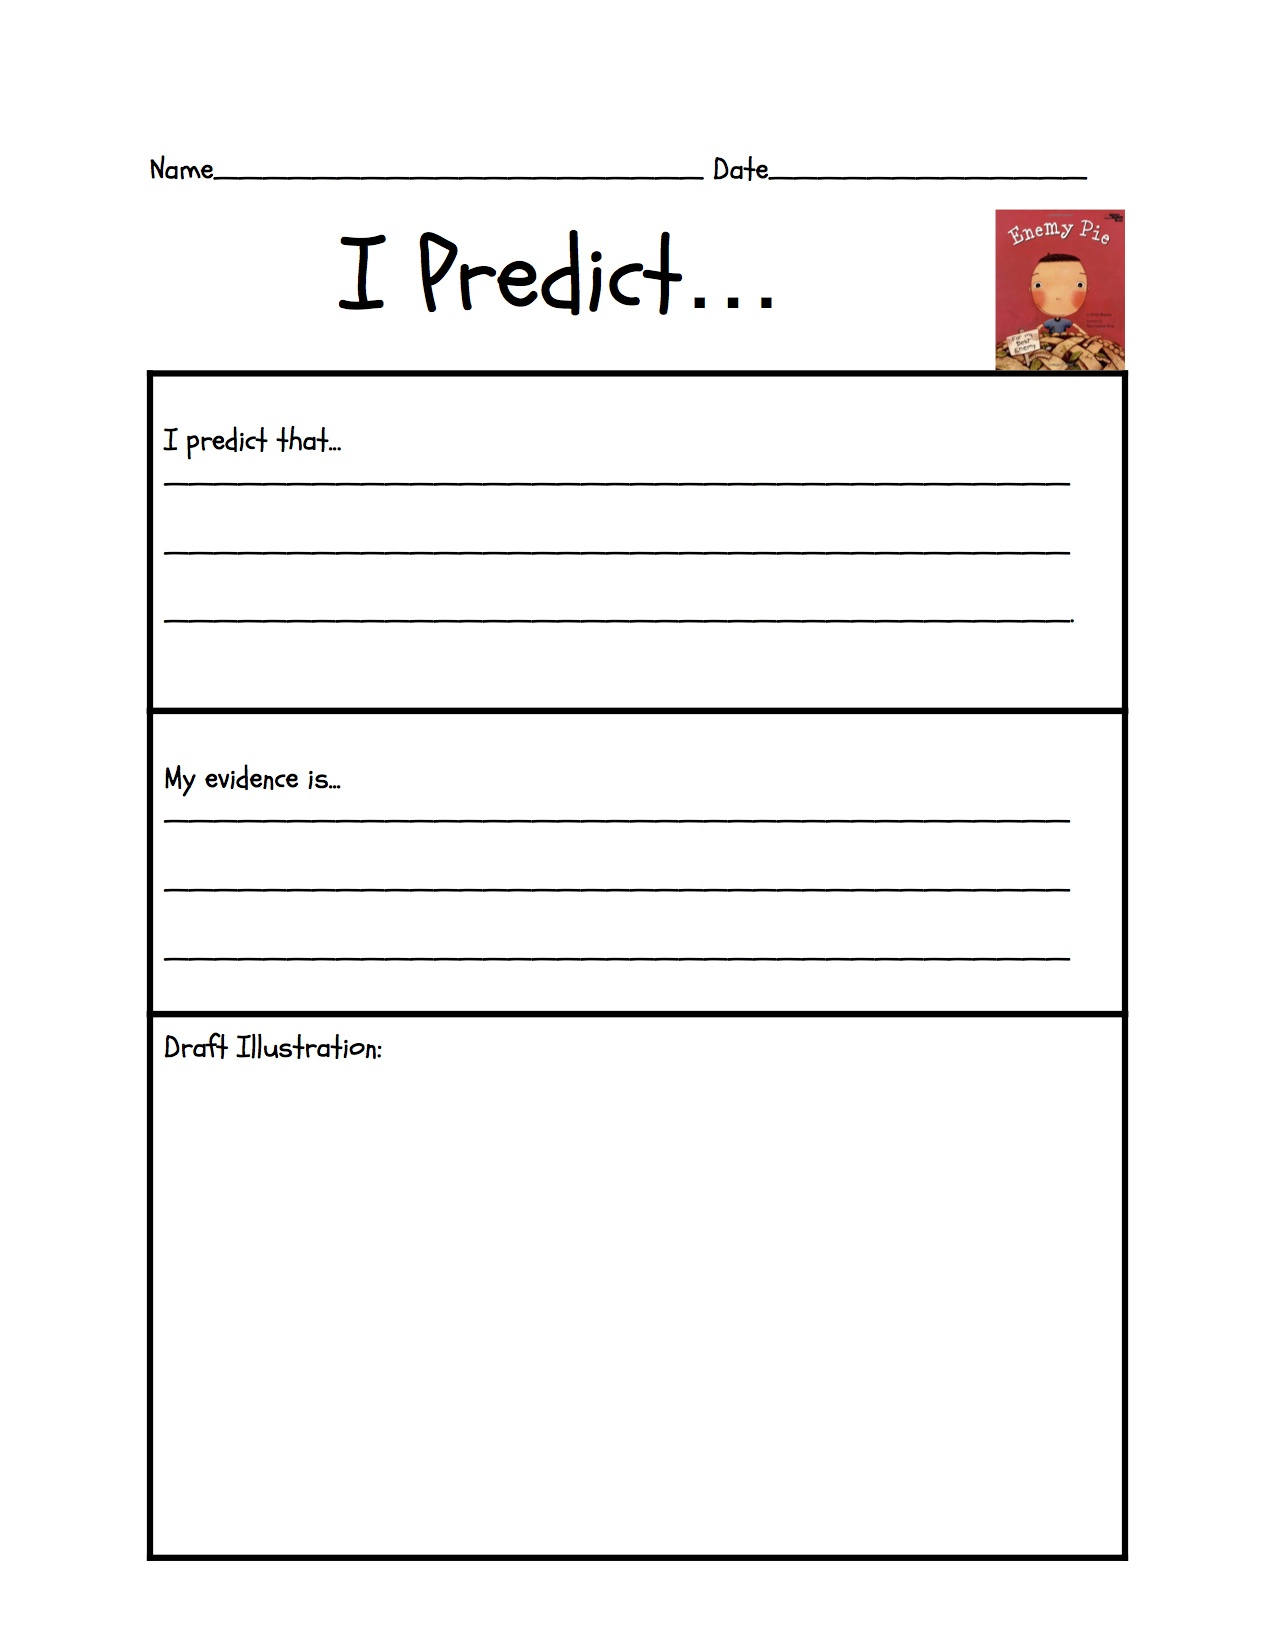 Worksheets Making Predictions Worksheets 3rd Grade predicting liquid literacy organizeripredict